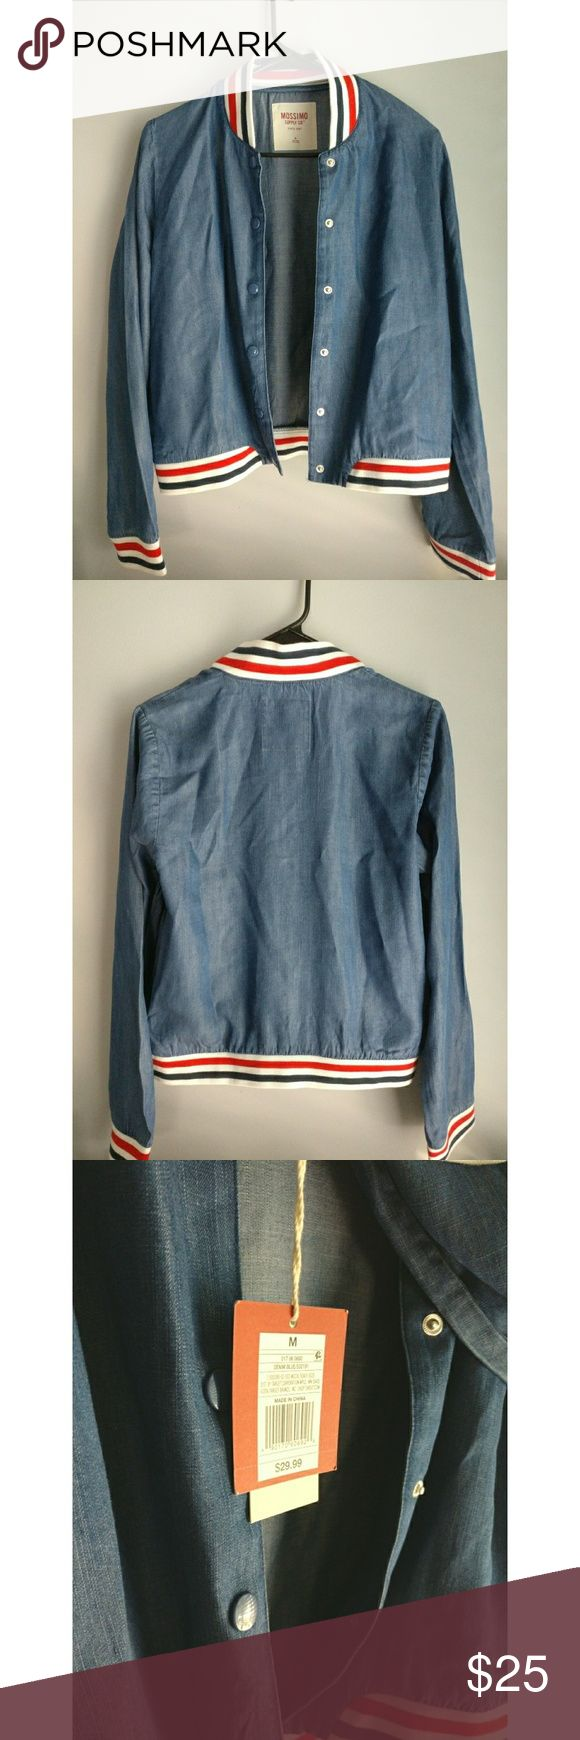 Mossimo Denim Jacket Cute Mossimo Supply Co denim jacket in size M perfect for fall. NWT Mossimo Supply Co. Jackets & Coats